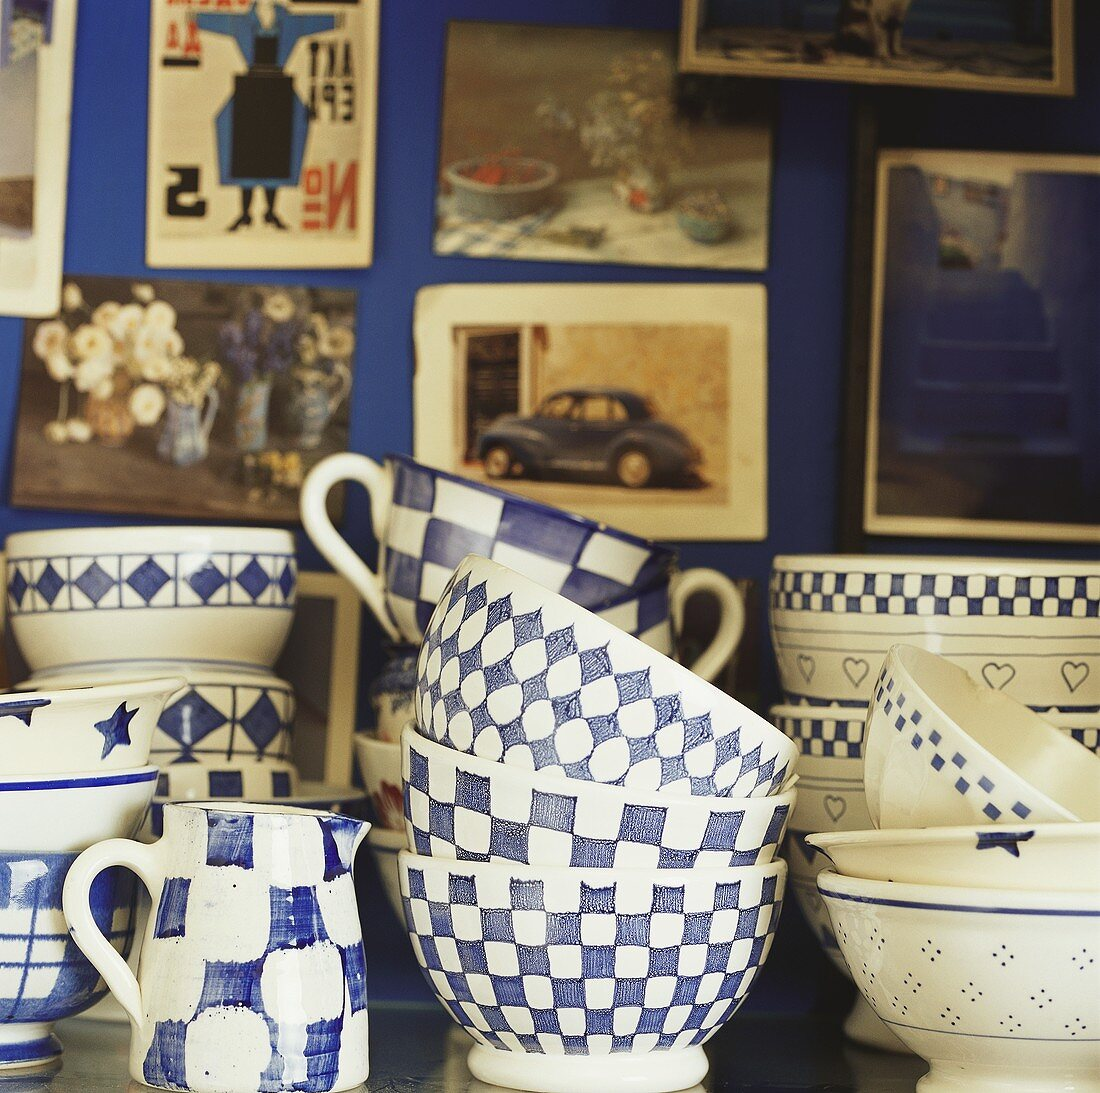 Blue and white crockery in front of wall with photographs